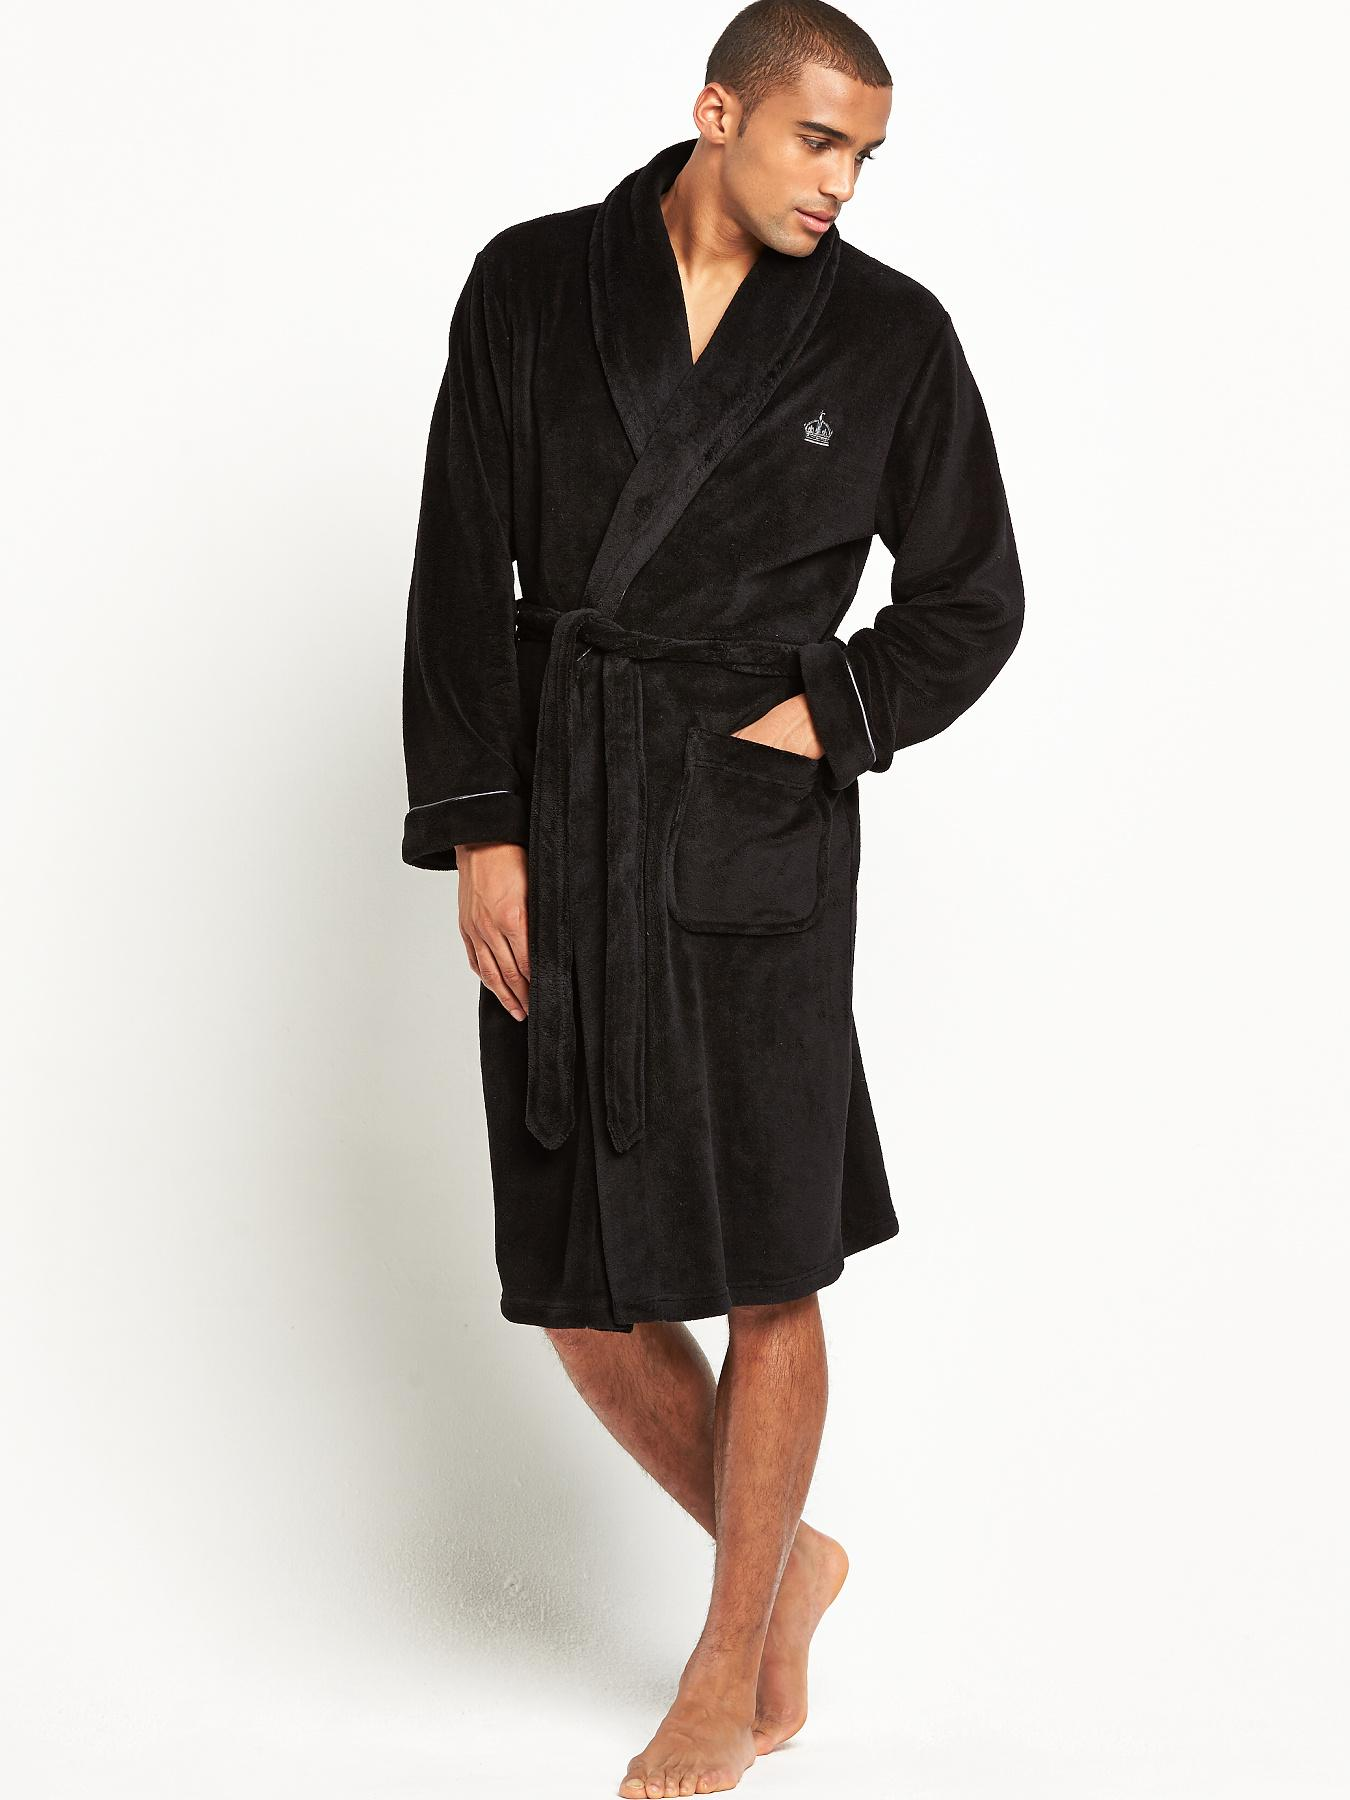 French Connection Mens Shawl Collar Robe - Black, Black